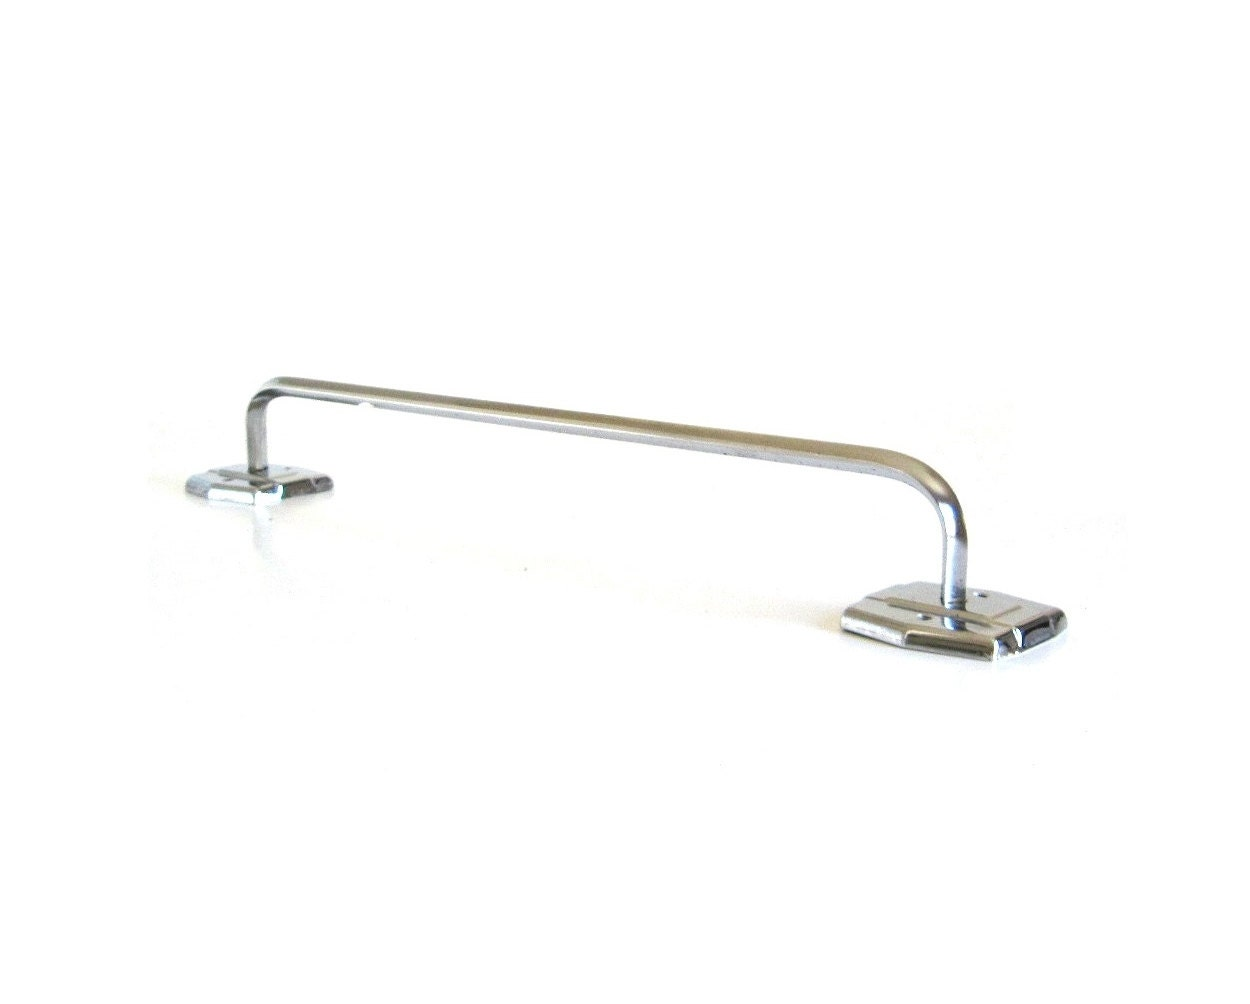 bathroom towel rod kitchen towel bar chrome 18 by